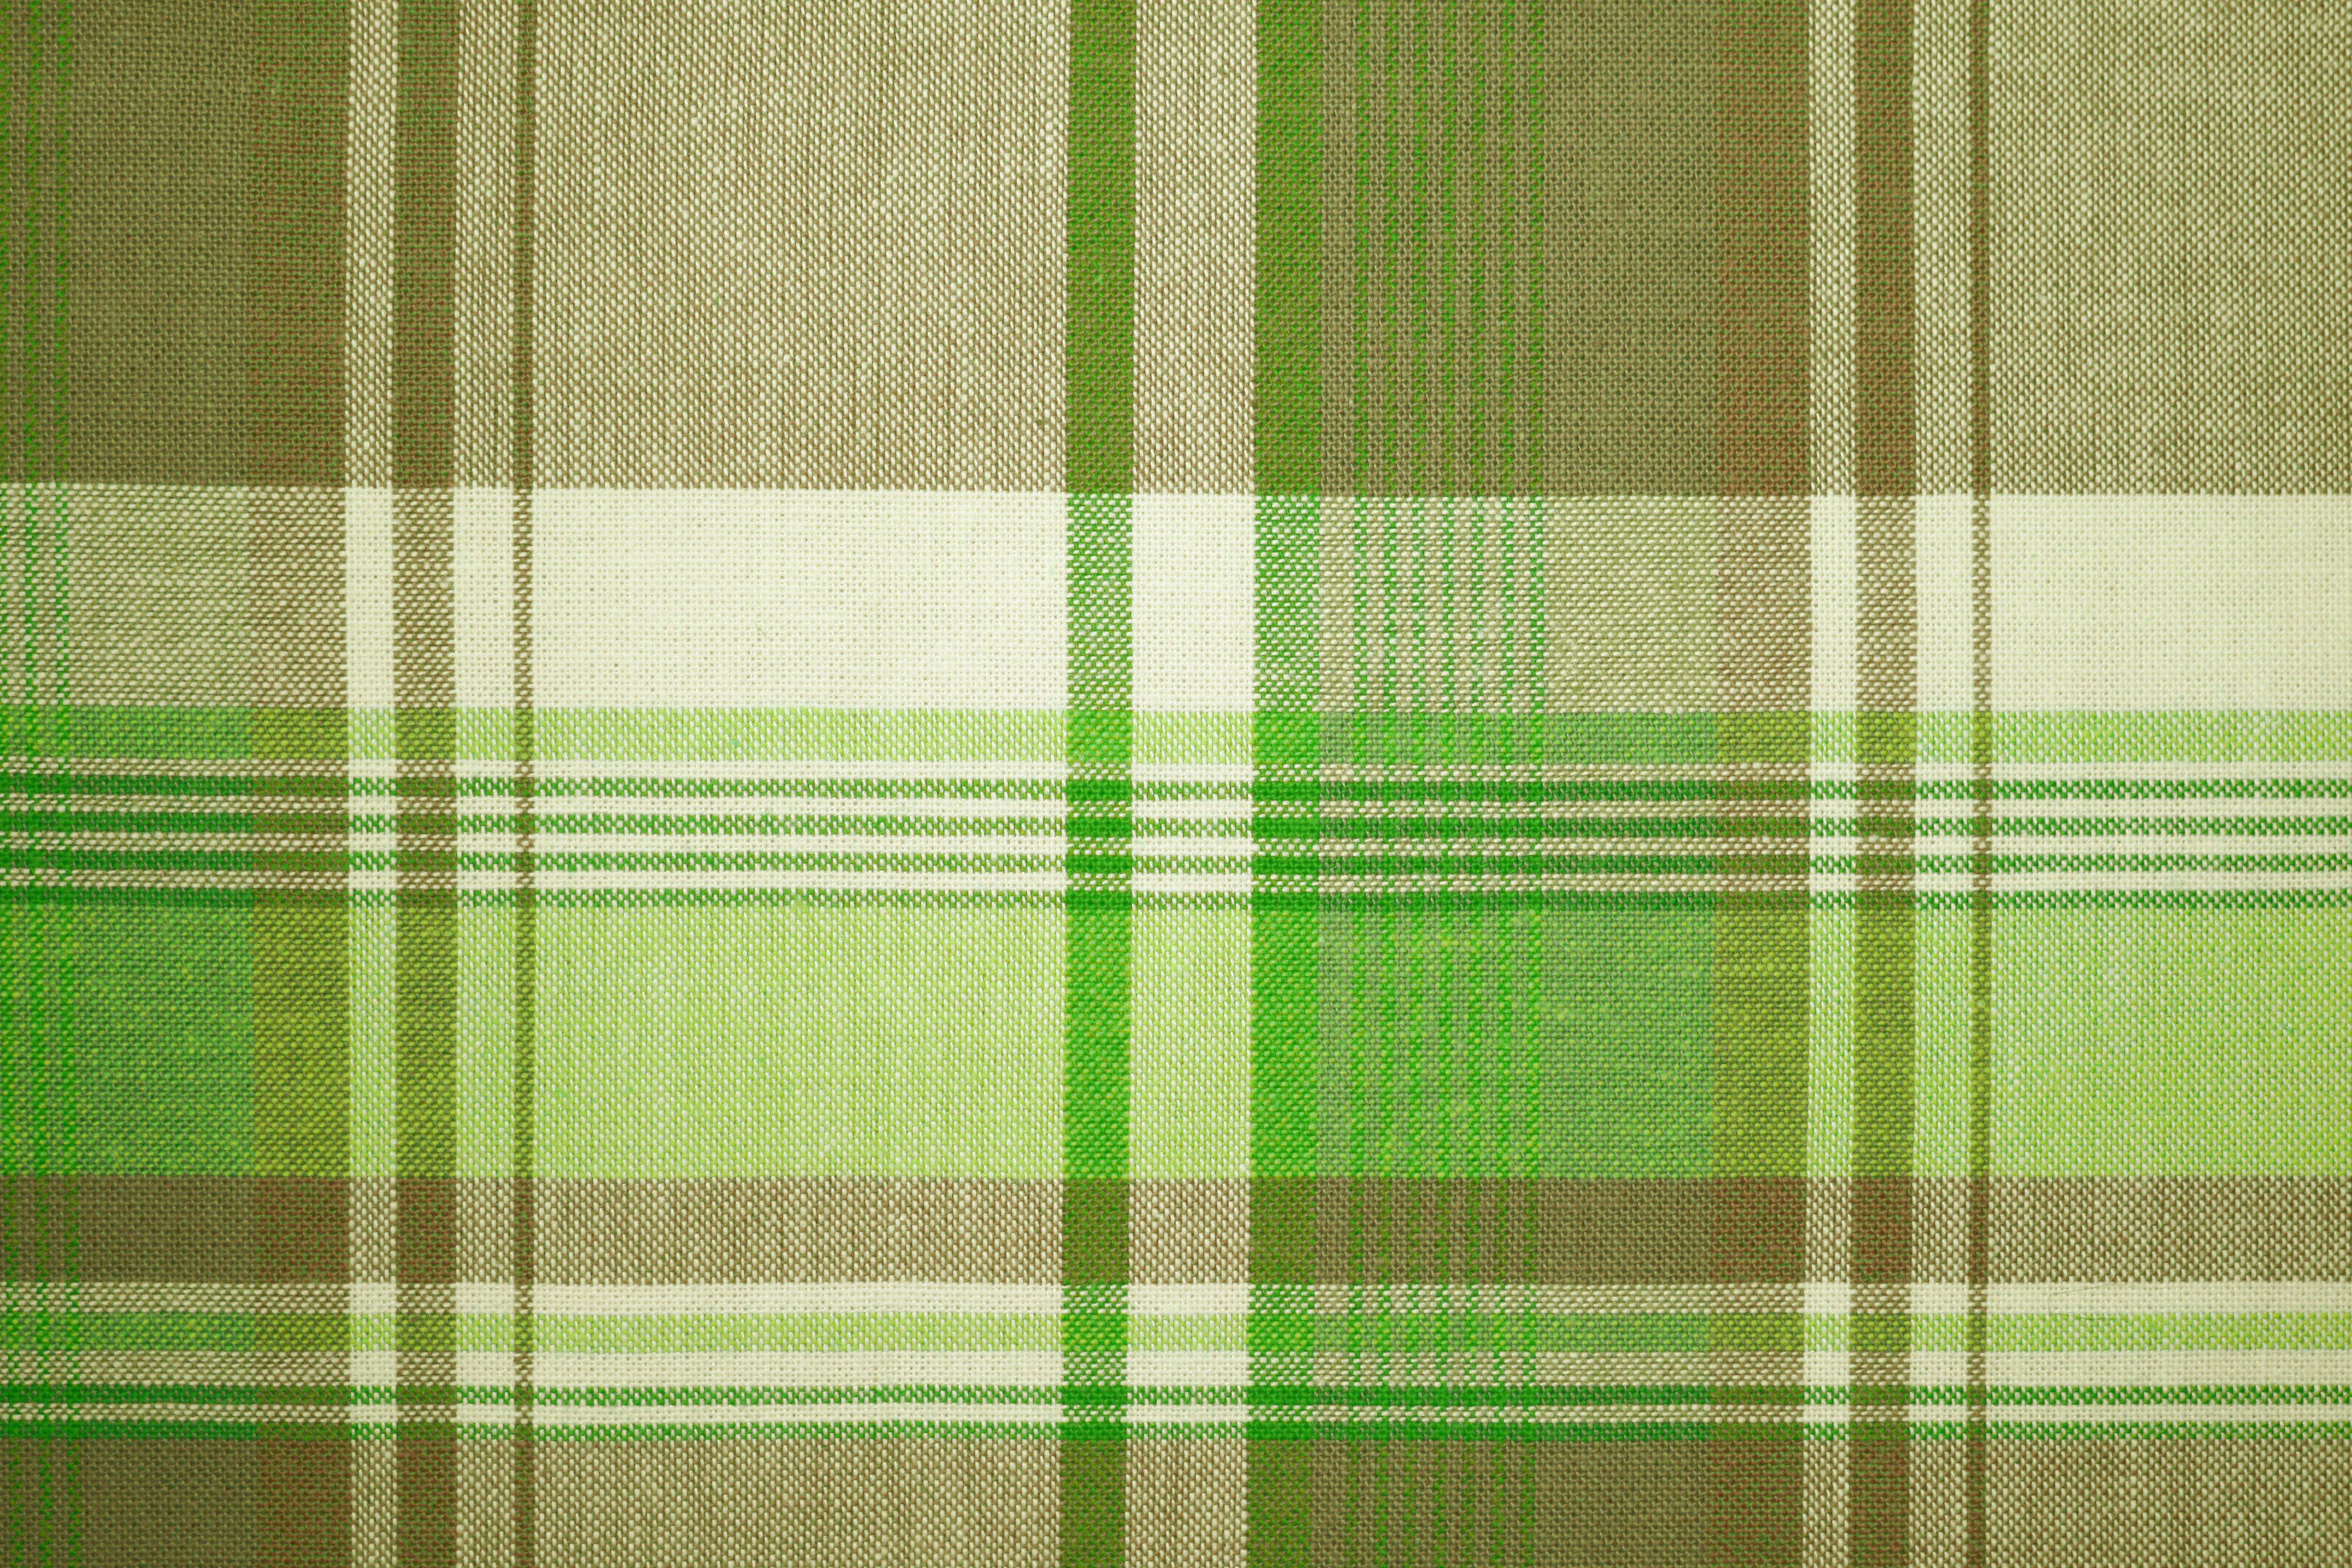 Green And Brown Plaid Fabric Texture Picture Free Photograph - Green and brown wallpaper